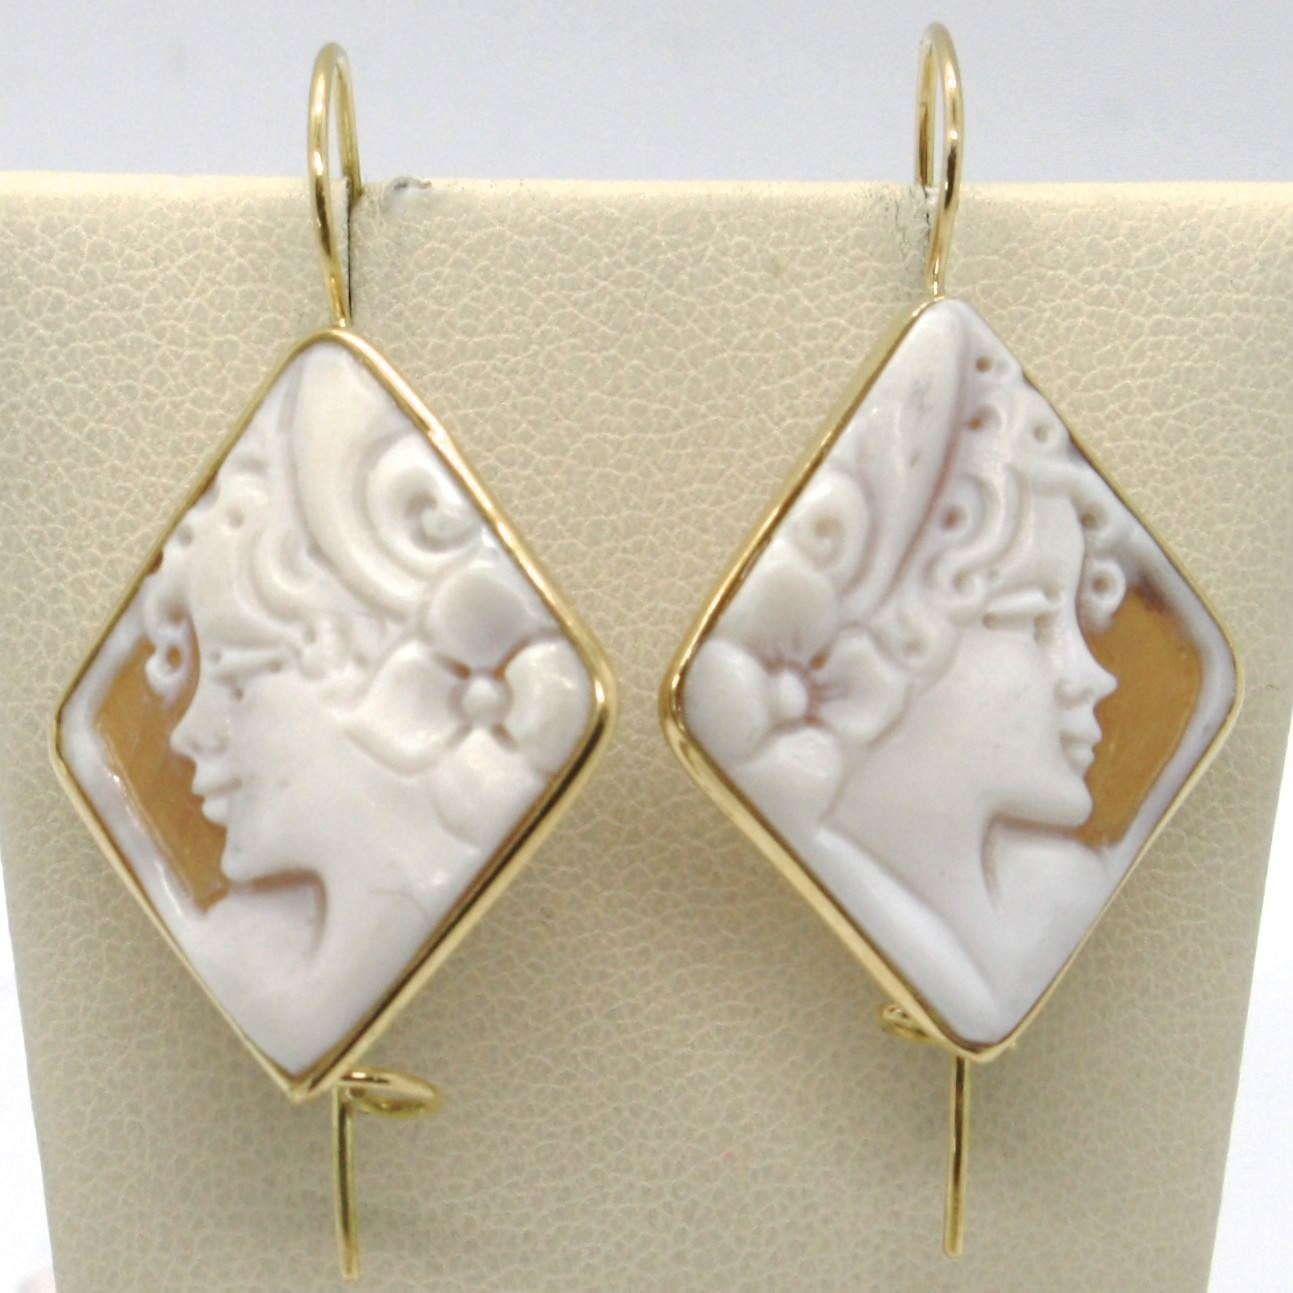 18K YELLOW GOLD PENDANT HOOK EARRINGS, CAMEO FLOWER LADY, HANDMADE IN ITALY